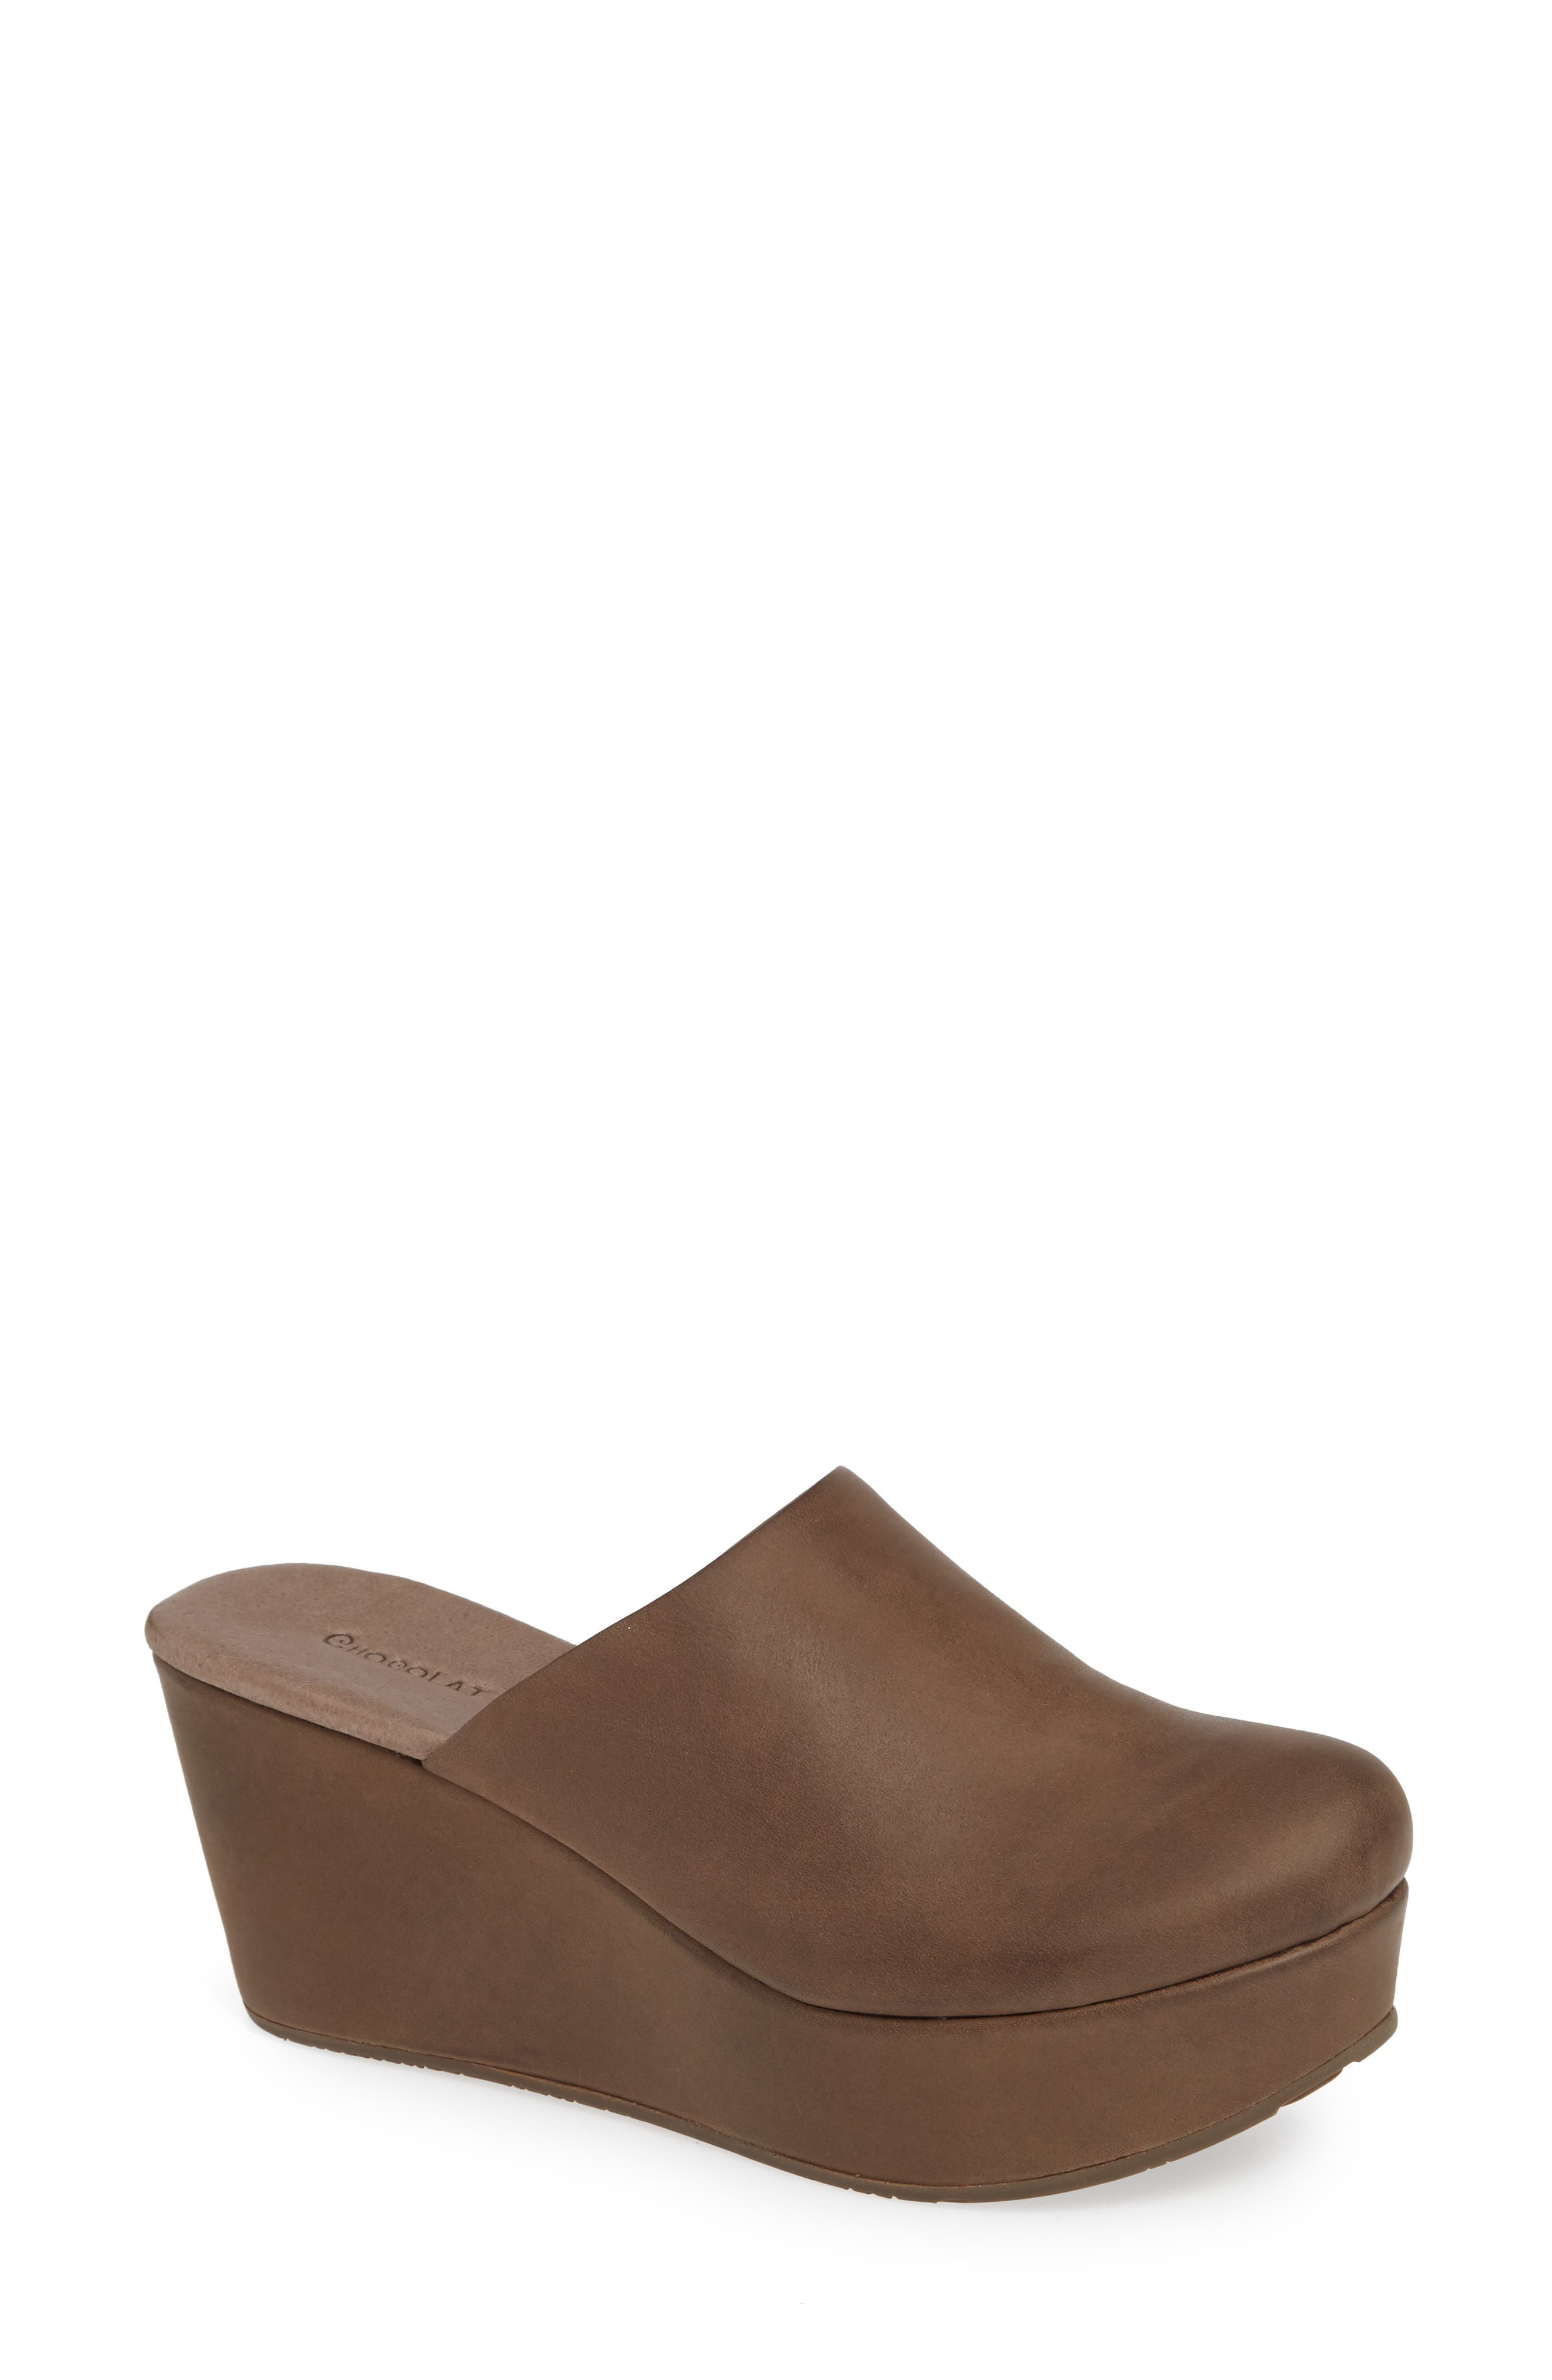 CHOCOLAT BLU, Wylie Wedge Mule, Main thumbnail 1, color, CHOCOLATE LEATHER